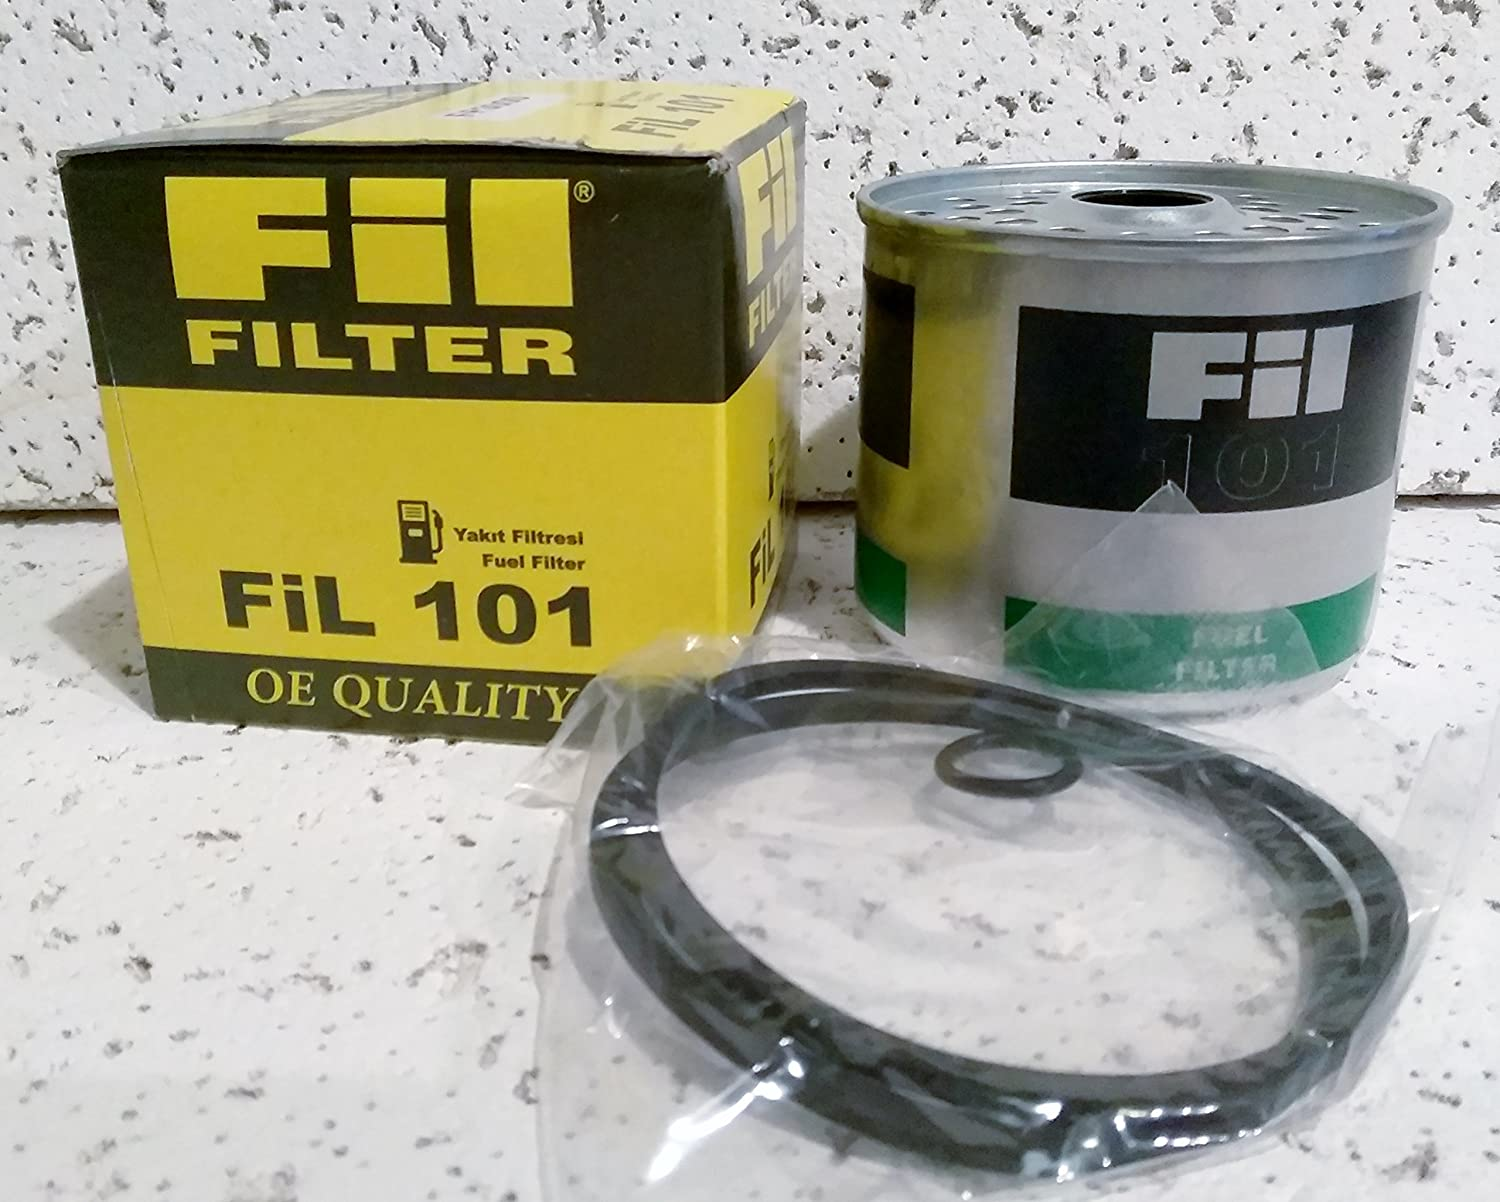 Amazon.com : FF3000 to fit Ford New Holland Tractor Fuel Filter 83937061  C7NN9176A C9TZ9365A D099-9176-B D0NN9N074B : Garden & OutdoorAmazon.com